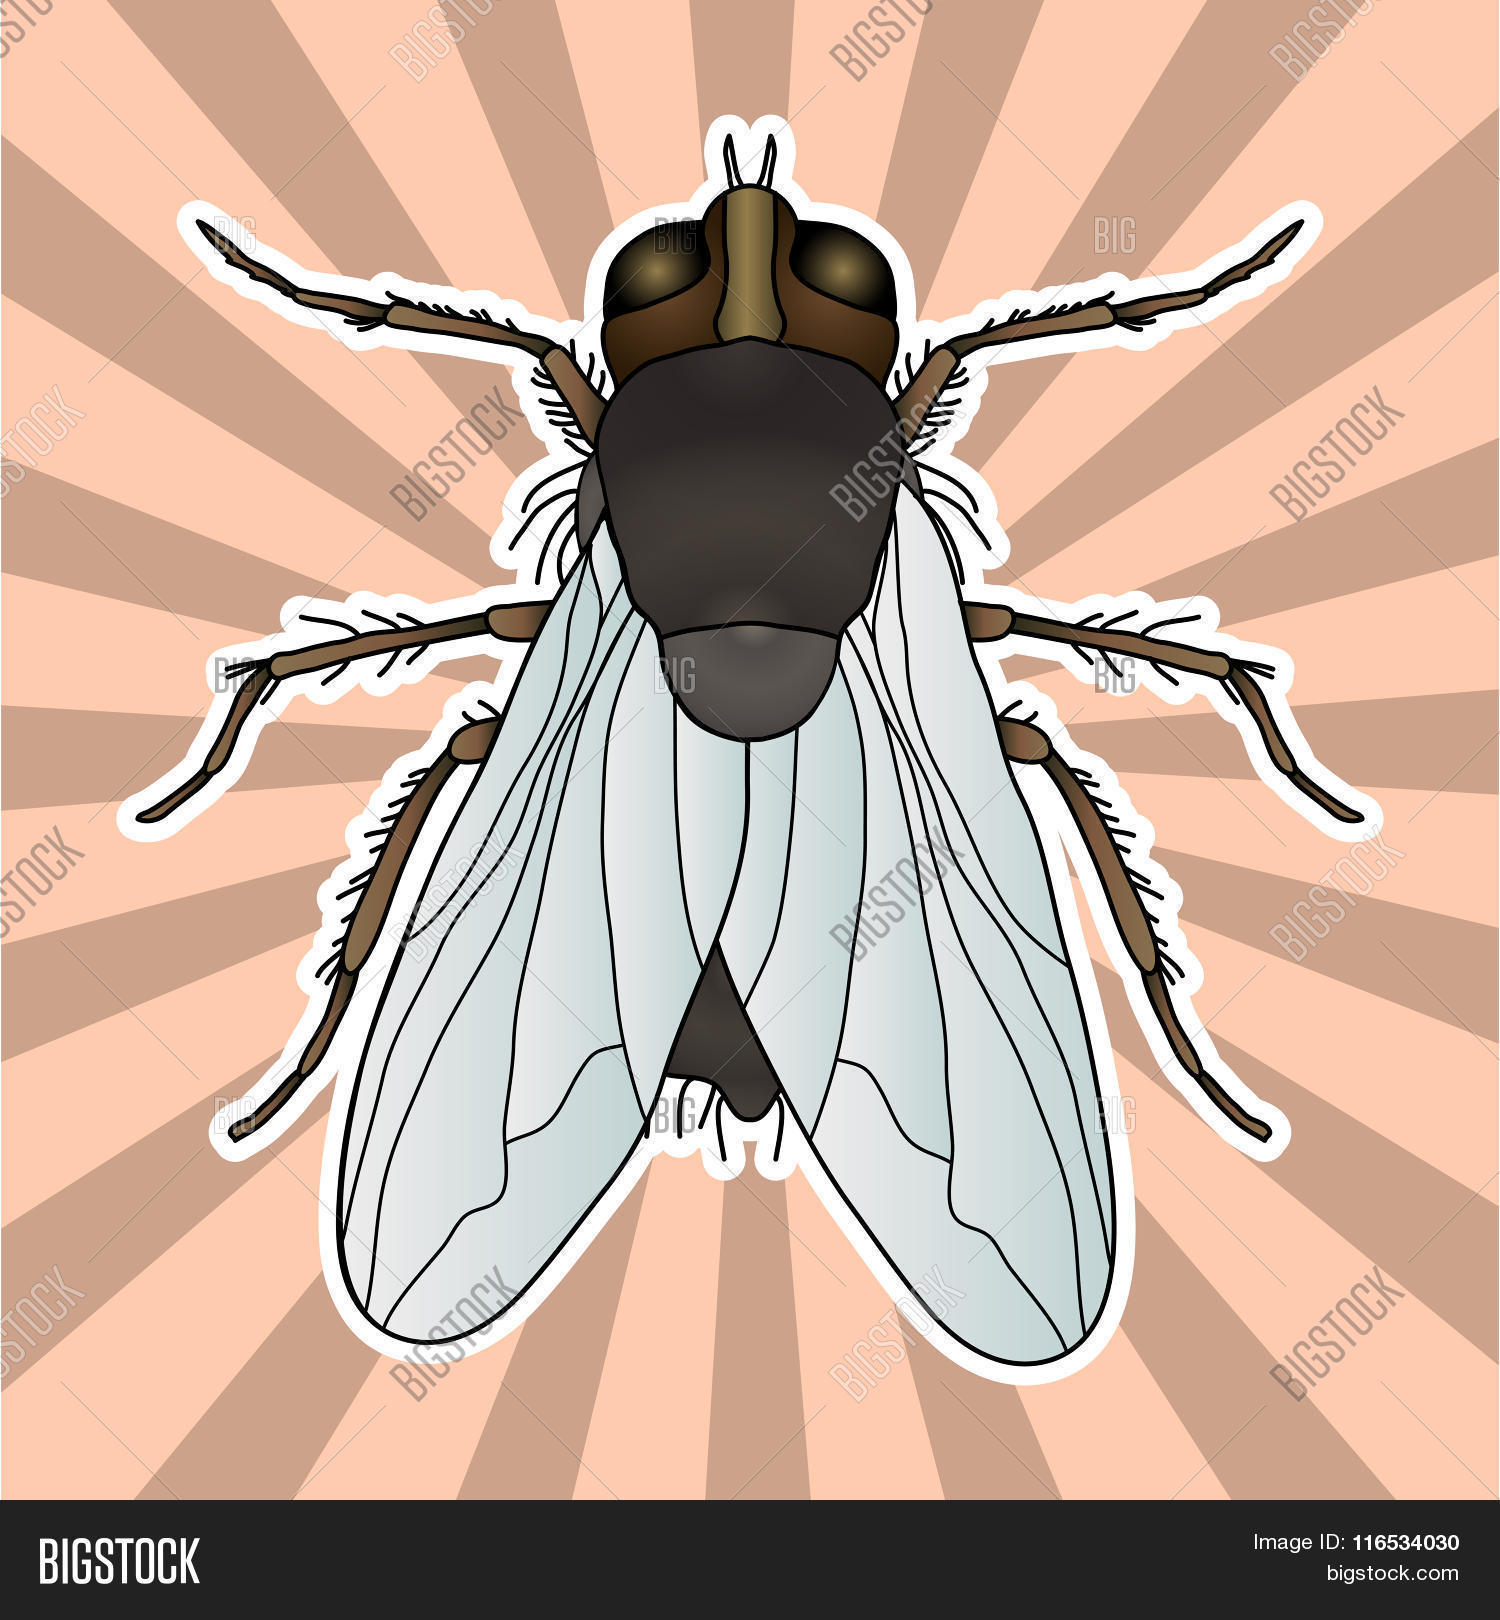 Insect Anatomy. Sticker Fly. Musca Vector & Photo | Bigstock